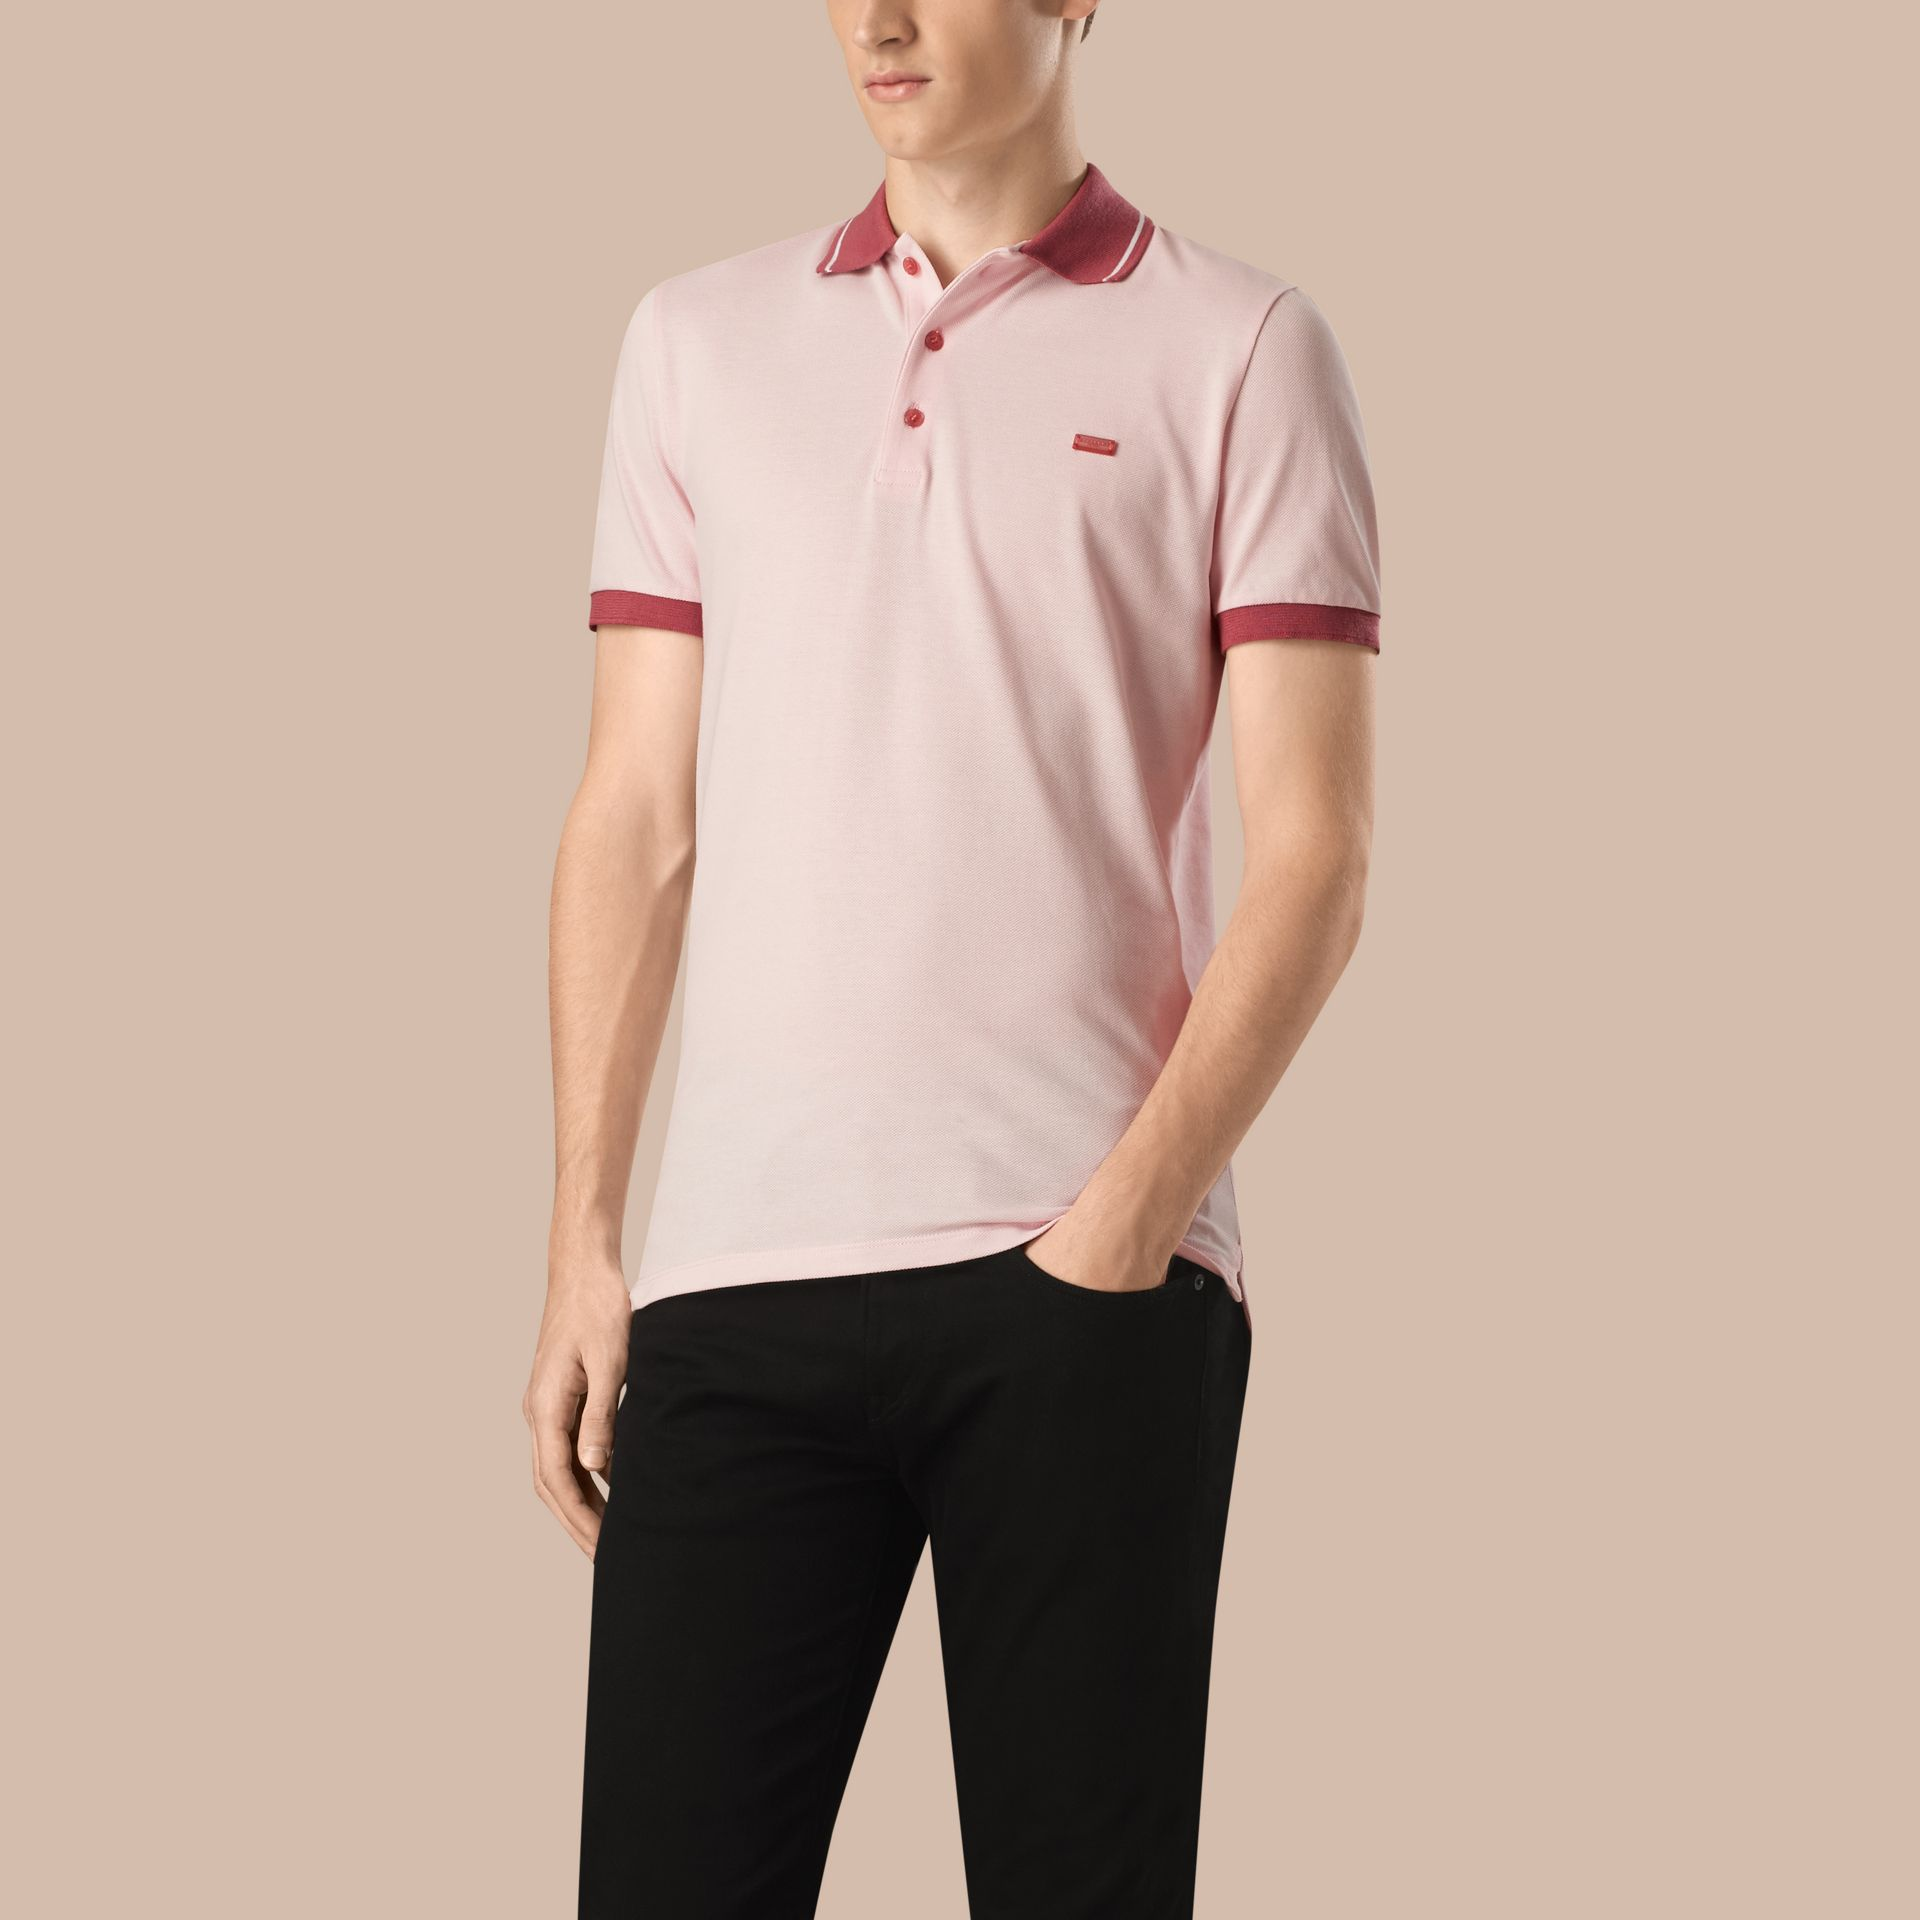 City pink/white Contrast Trim Cotton Piqué Polo Shirt City Pink/white - gallery image 1